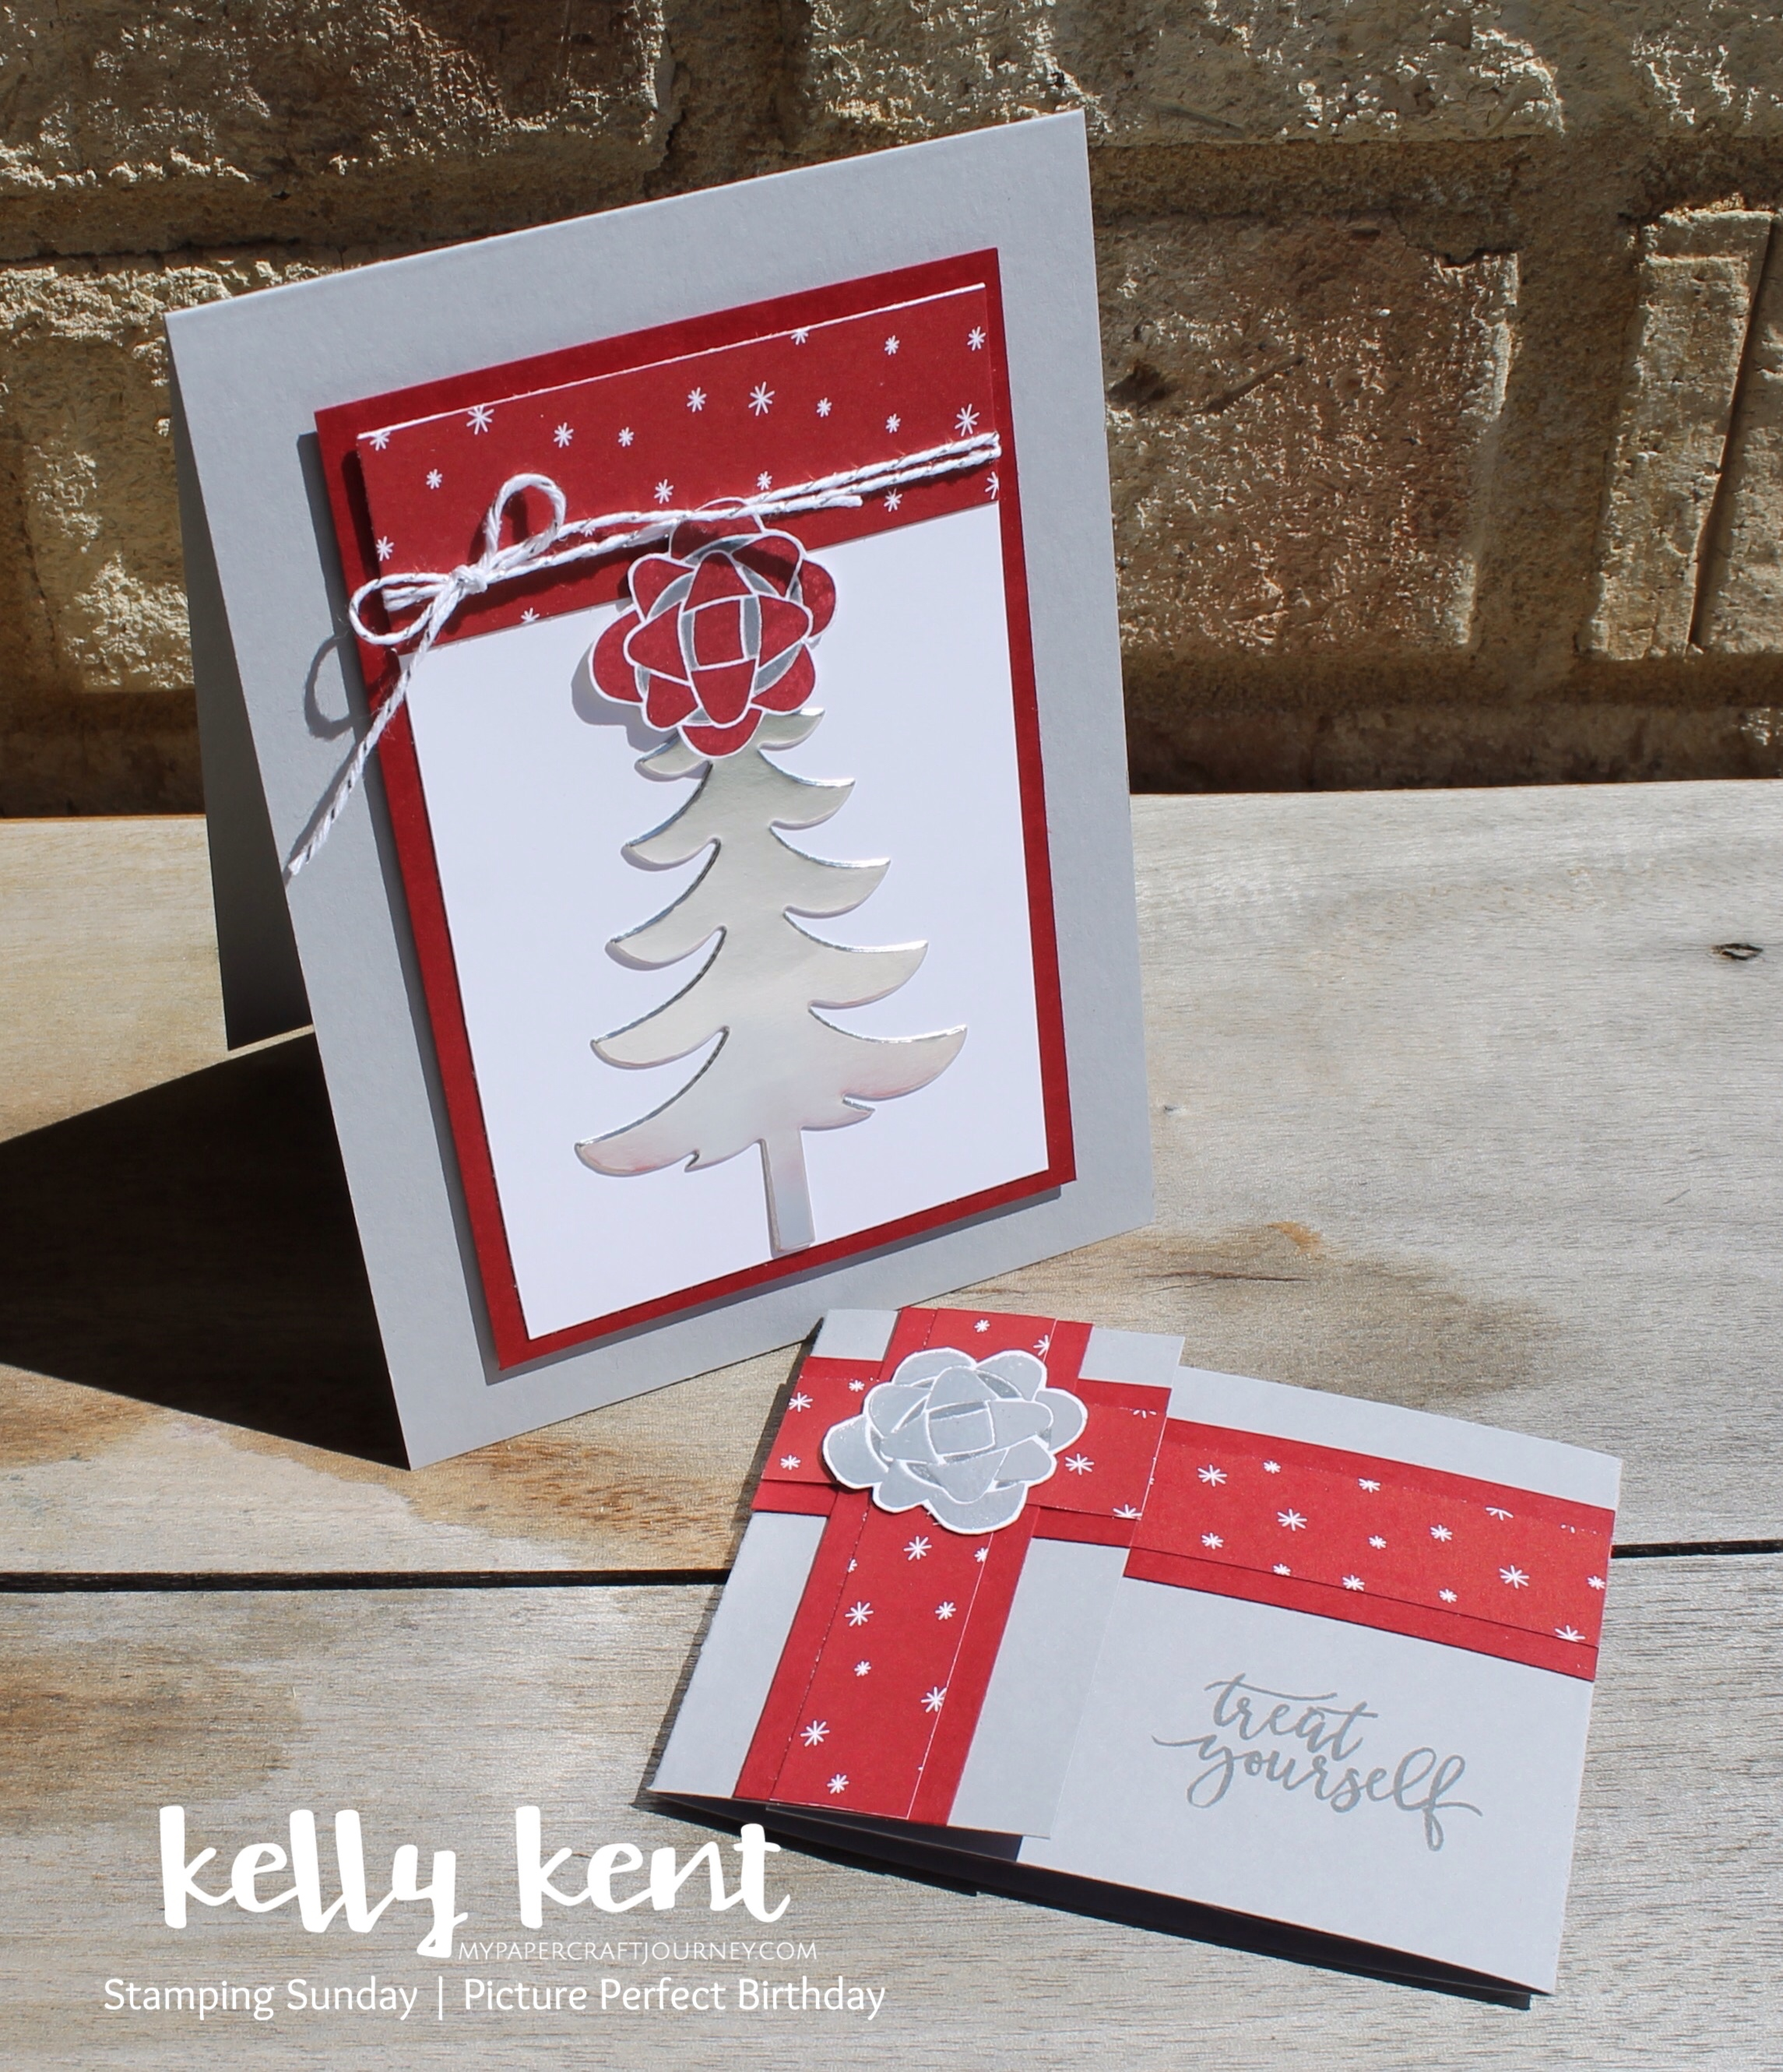 Stamping Sunday Picture Perfect Birthday (Christmas) | kelly kent